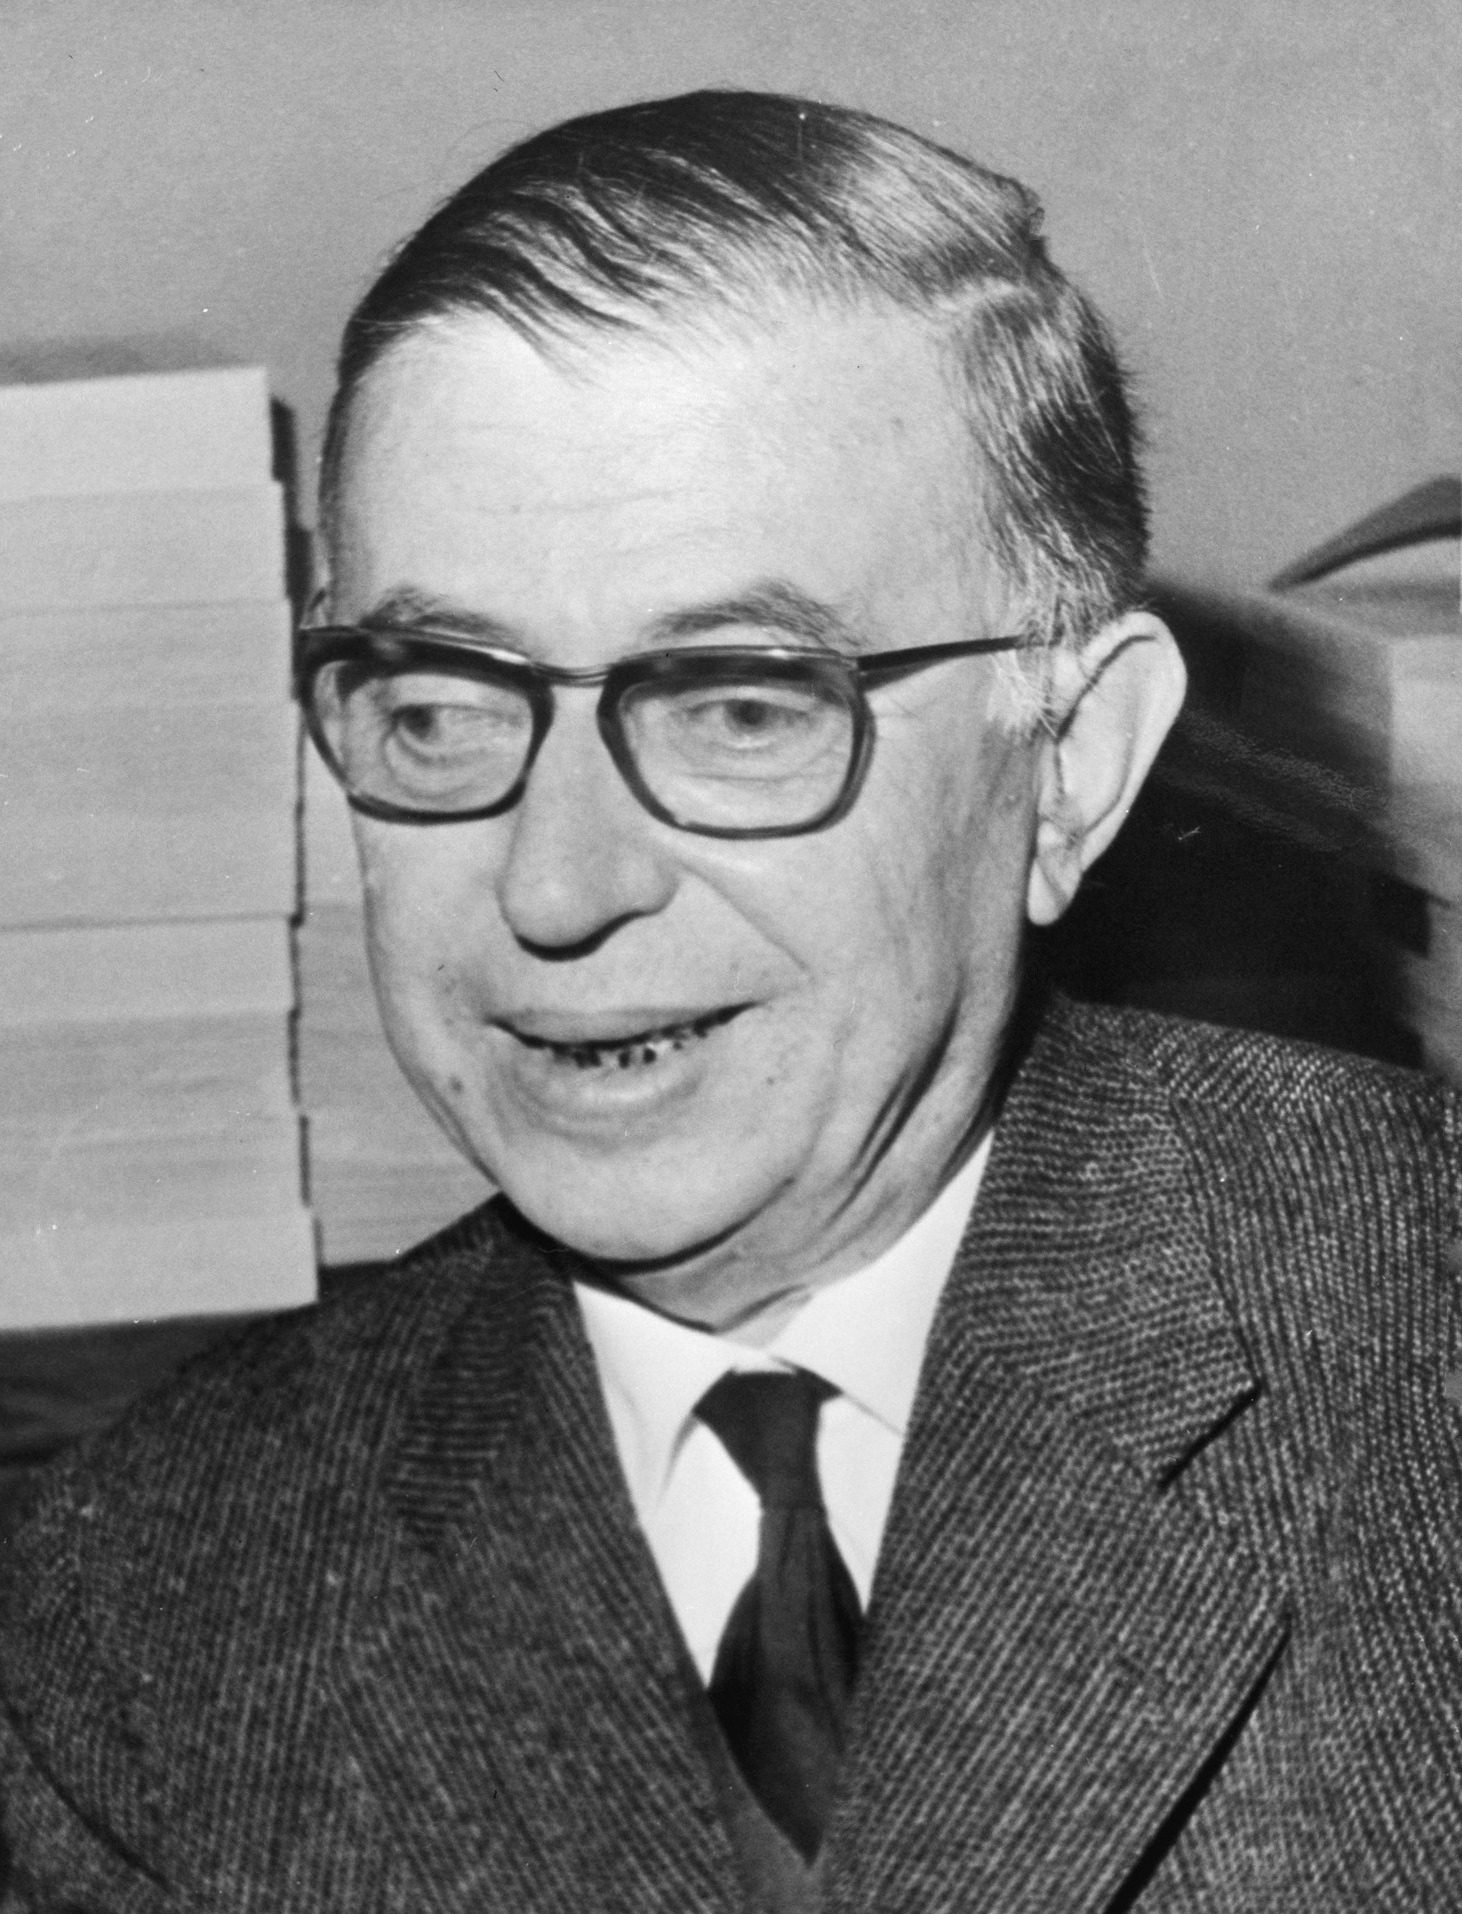 the existentialism of jean paul sartre Existentialism – jean-paul sartre (1905-1980)from the 1940s through the 1950s, existentialism was the most widely discussed philosophy in europe and america its.